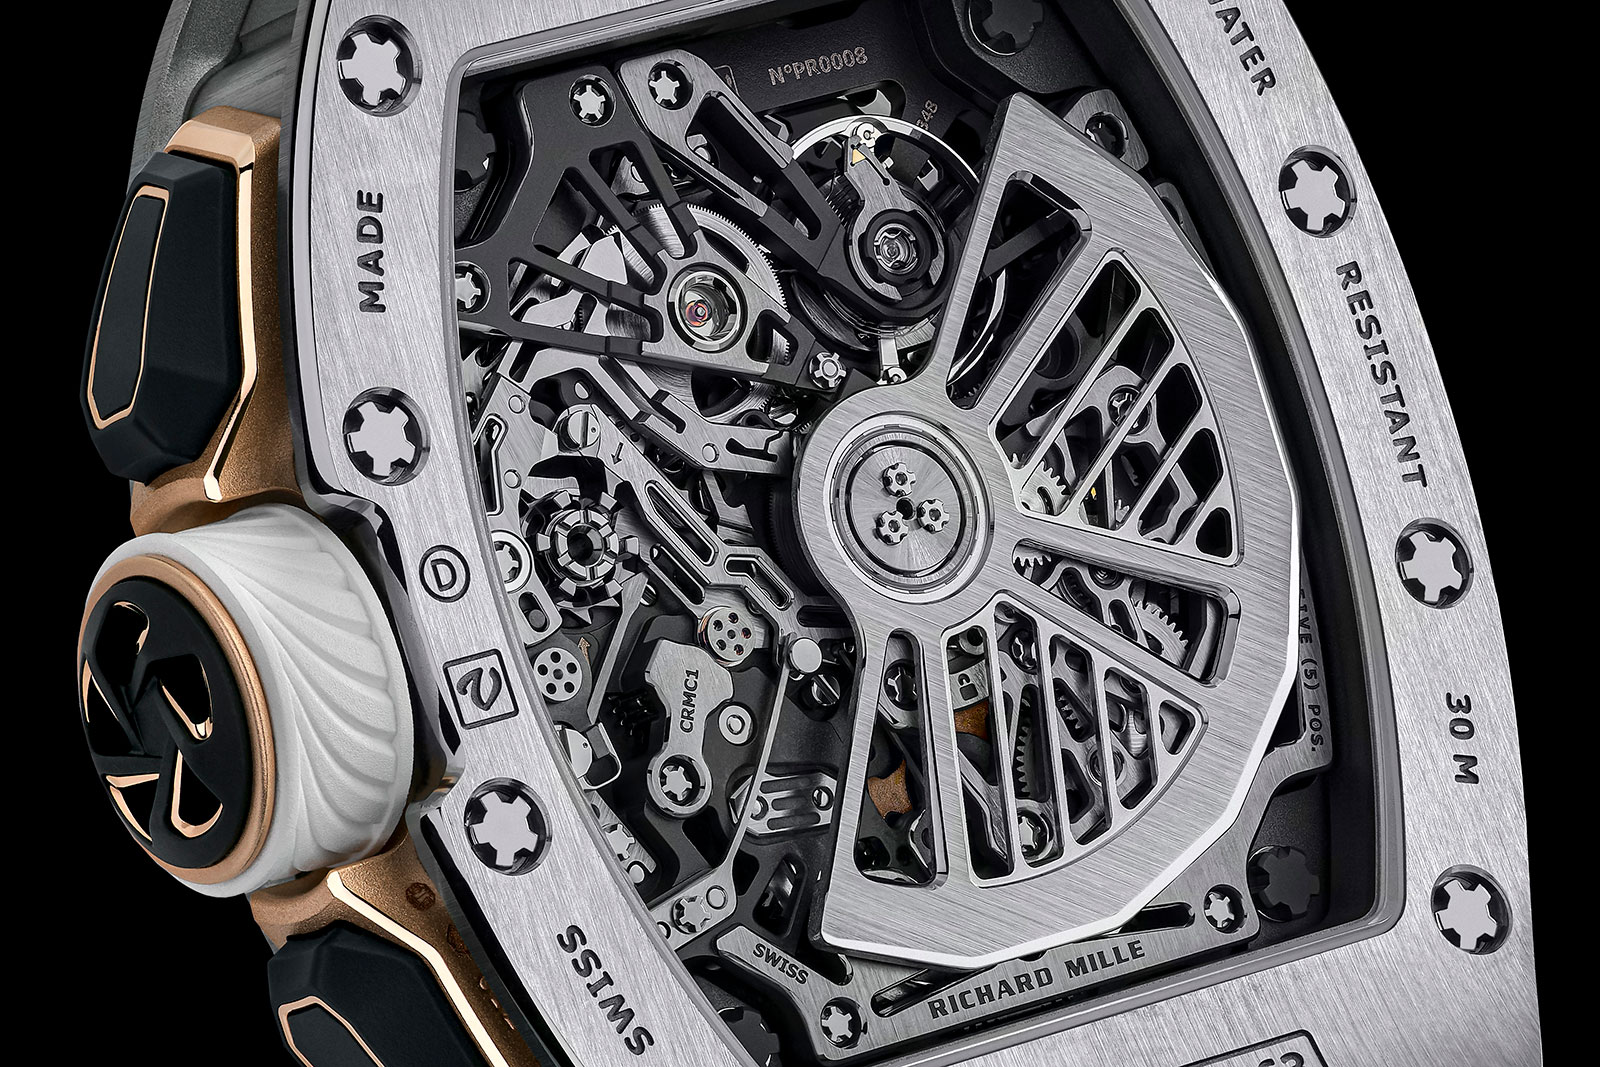 Richard Mille RM 72-01 Lifestyle Chronograph trasera